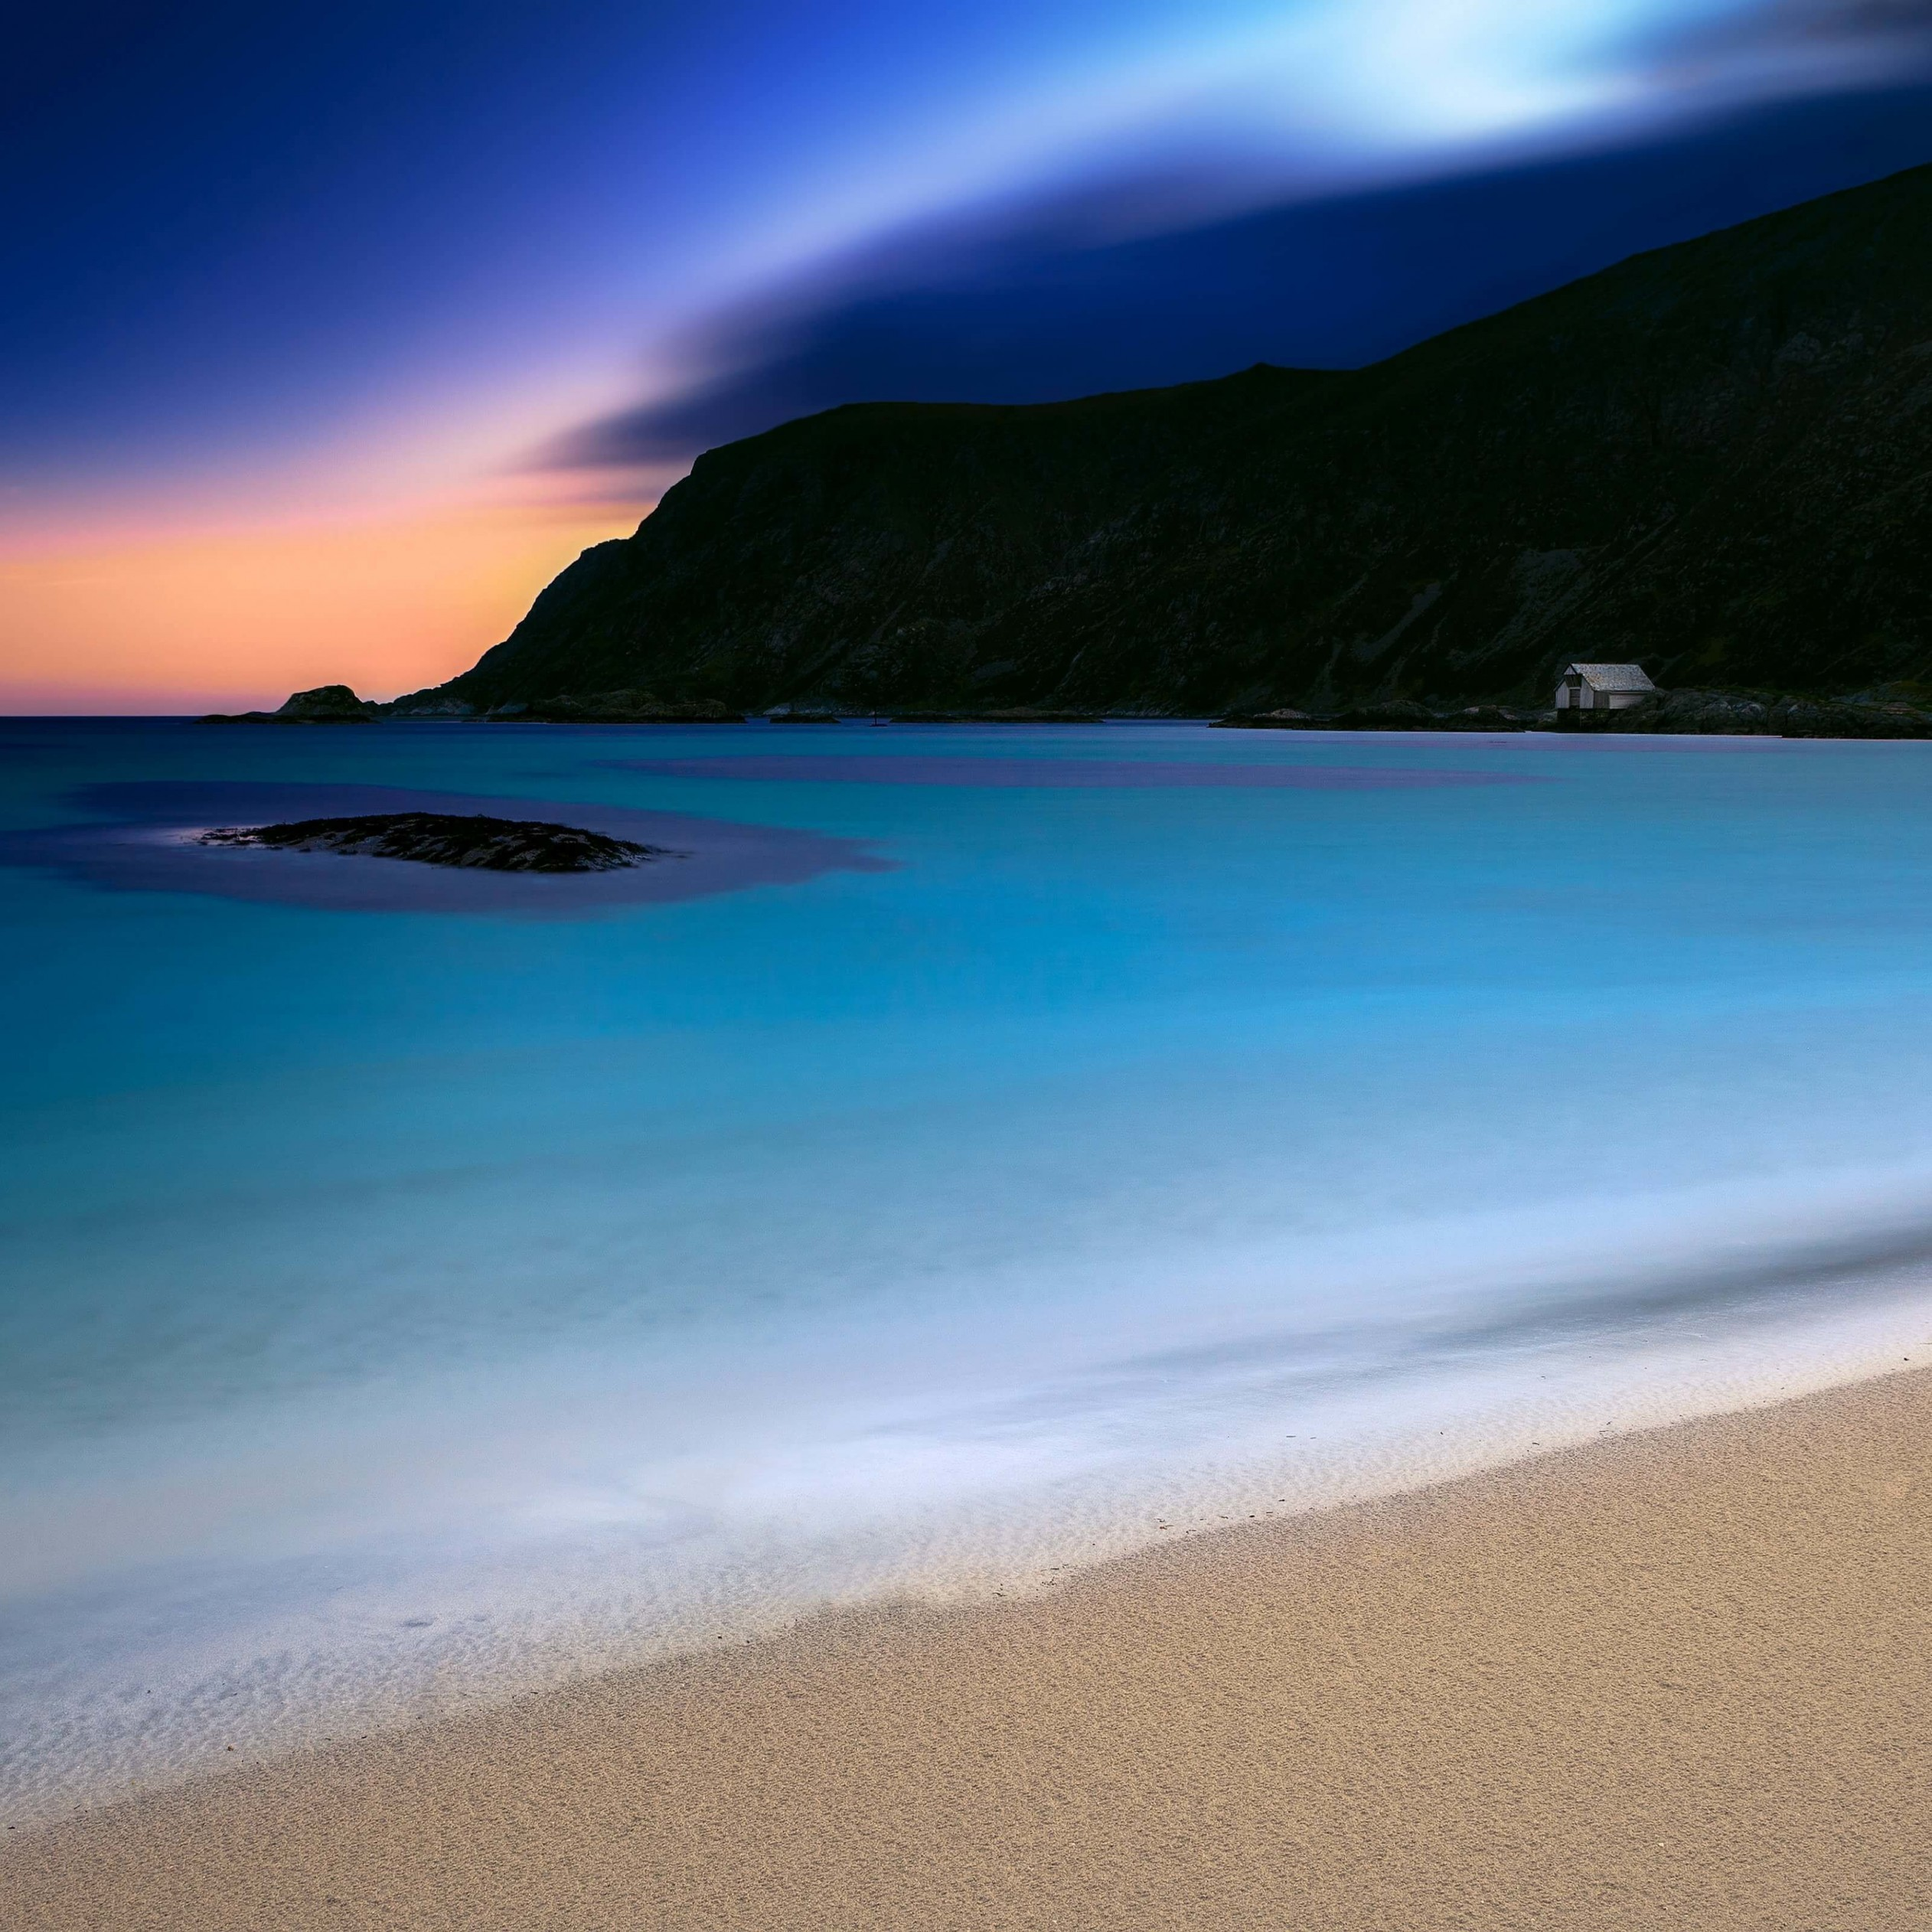 Turquoise Night Wallpaper for Apple iPad 4